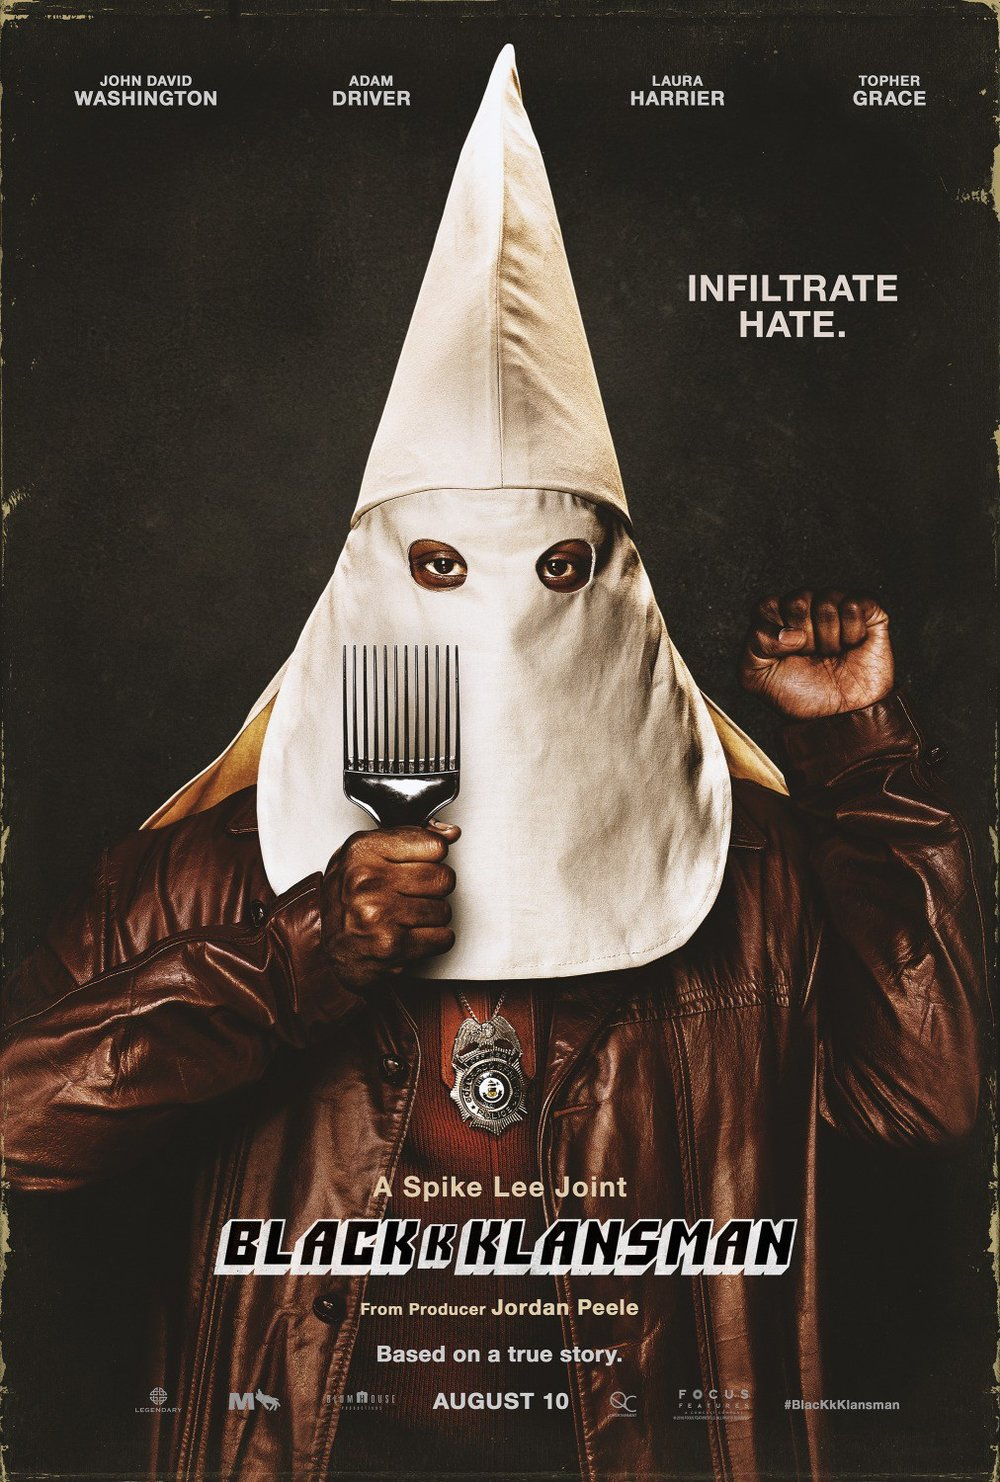 Review of Blackkklansman by Kathia Woods - Blackkklansman is the latest offering by acclaimed filmmaker Spike Lee. The movie is the story of how African-American police officer Ron Stallworth infiltrated the Ku Klux Klan. It all started when he read a recruitment ad in the paper and decided to call. The person on the other end had no idea that his latest recruit was black. This is where the story becomes interesting. Stallworth needs a white counterpart to help him pulls off this ruse. It comes in none other than Flip Zimmerman an undercover detective who also happens to be Jewish. Zimmerman portrayed by Adam Driver is responsible for characterizing the Stallworth who is very charismatically racist online to come to life in the real world. Complicating things further the person Stallworth built his radical repartee with was none other than David Duke. Duke is so impressed by his recruit that he decides to travel to Colorado for his initiation ceremony.Stallworth who finally has found his sense of purpose at the Colorado Police meets Patricia president of the Black Student Union. Patricia is political unapologetically black and anti-police. Let's recap by day Stallworth is pretending to be a white supremacist and at night he's part of the black power movement with Patricia. There are many current themes in this movie. Code-switching the ability to converse in proper English to be accepted by mainstream Americans and jive/ebonies the urban vernacular often used amongst people of color. The complicit behavior at times by white women to use the police department as their security force against black men as seen in the news recently. The spreading of revisionist history to justify racism visa vie to deny the holocaust or holding on to Confederate monuments that celebrated slavery. This movie may take place in the 70's, but the themes are very current. Spike has always been great by being in tune with the fabric of America. This movie works because although the events occurred in the past, we are still dealing with them today. The ending credits leave the audience with much to meditate. A Prince track and the killing of Heather Heyer shows us that America still has lots of work to do.